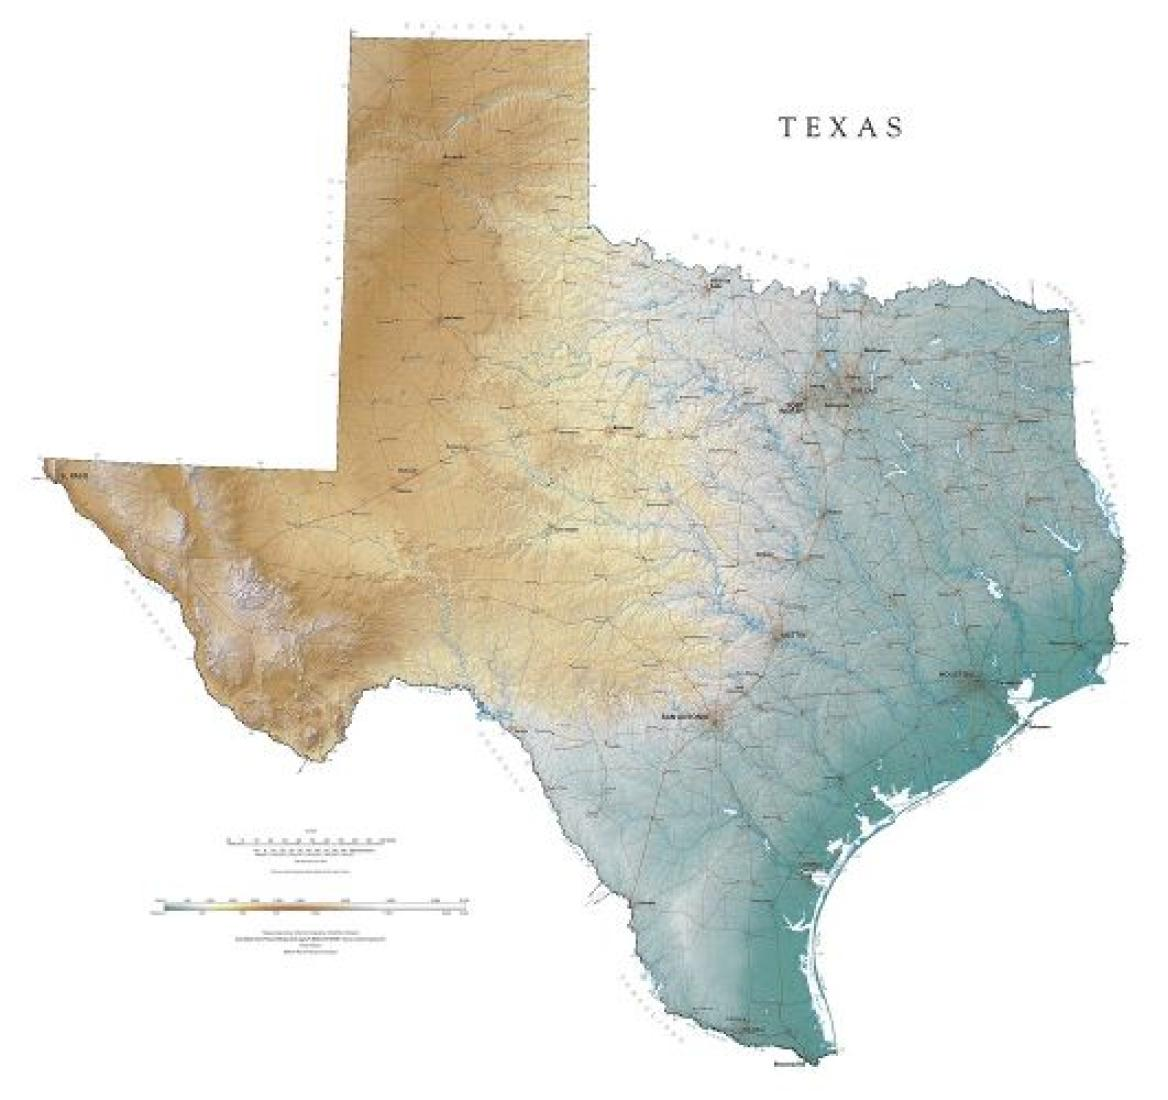 The Map Of Texas State.Texas Physical Wall Map By Raven Maps